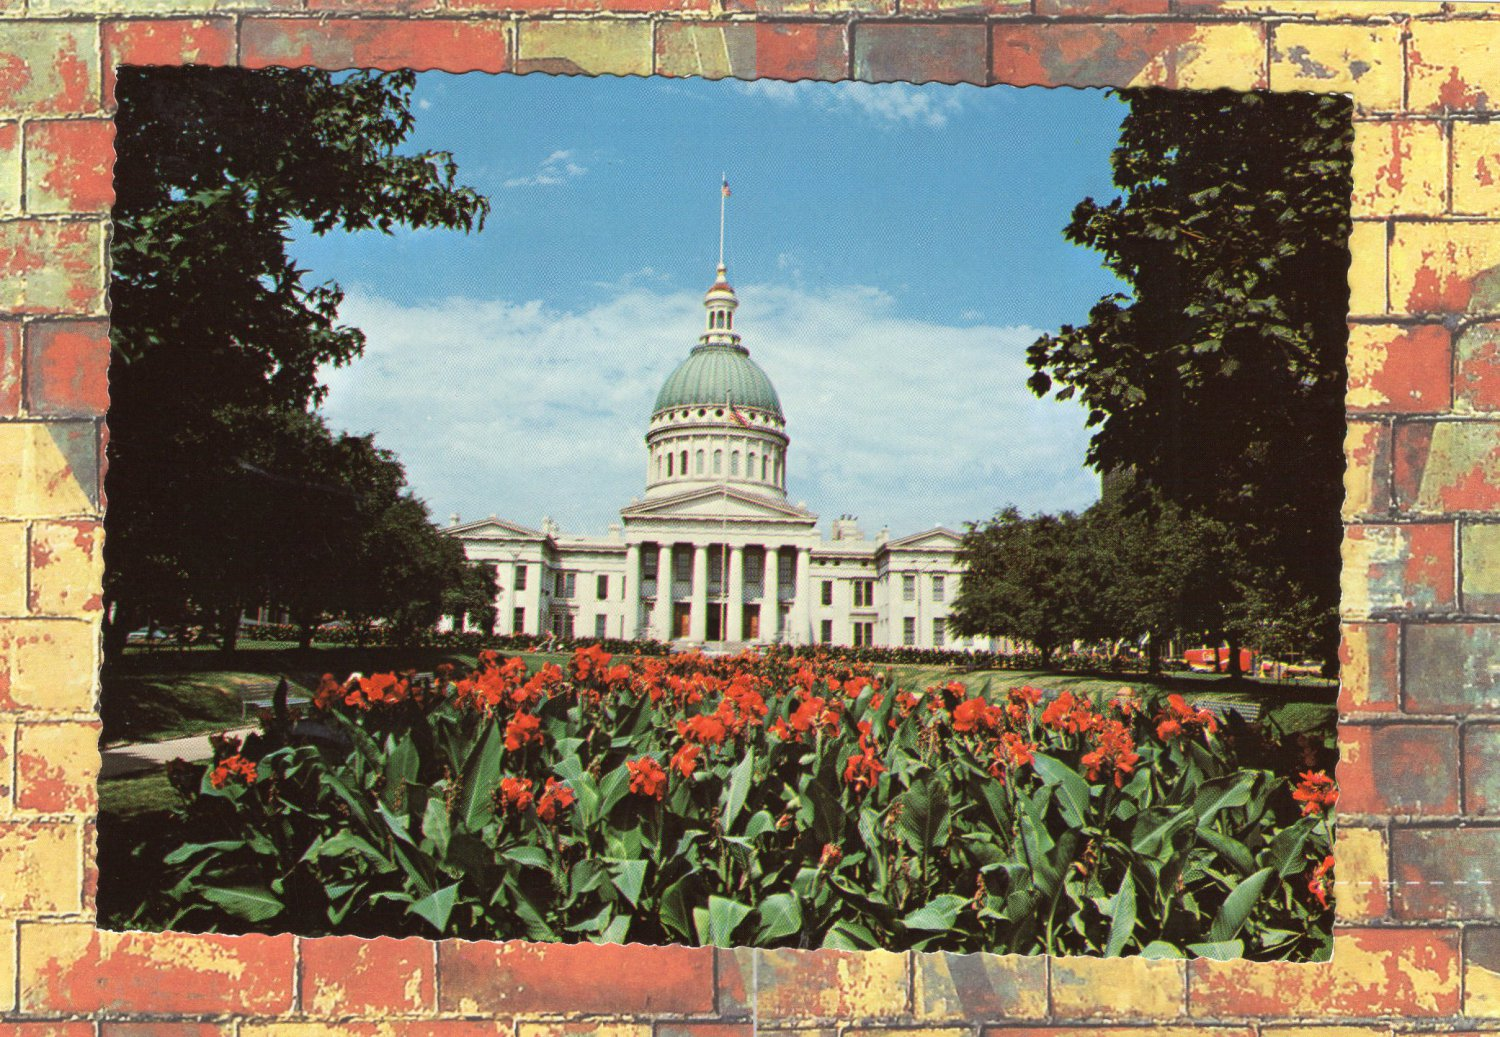 Old Courthouse and Flower Garden, Mississippi River Reflections Postcard, Historic Building, Scenic